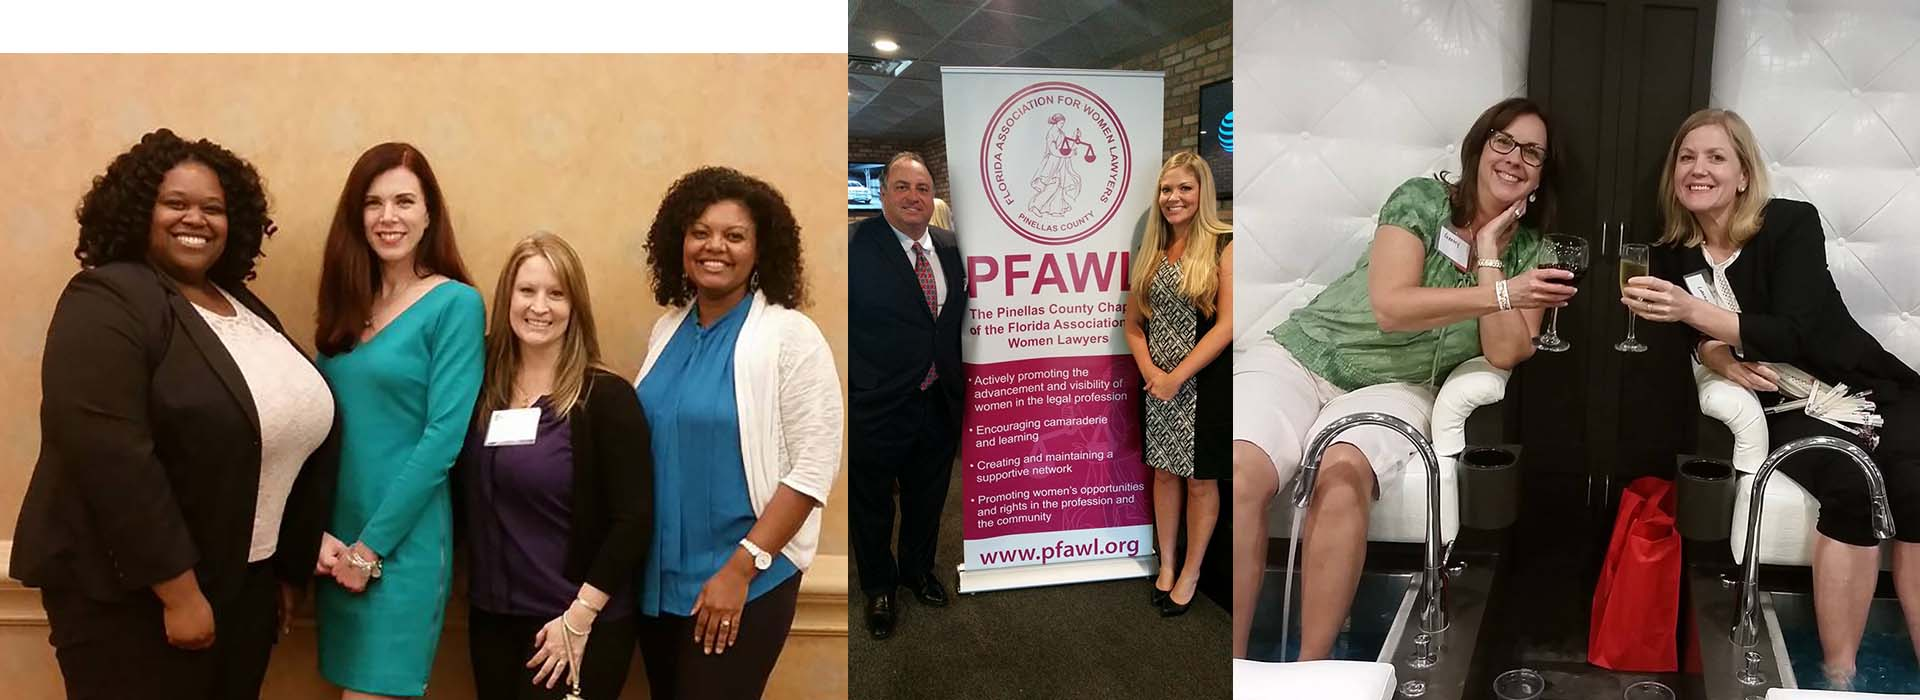 PFAWL - Pinellas Florida Association for Women Lawyers Events